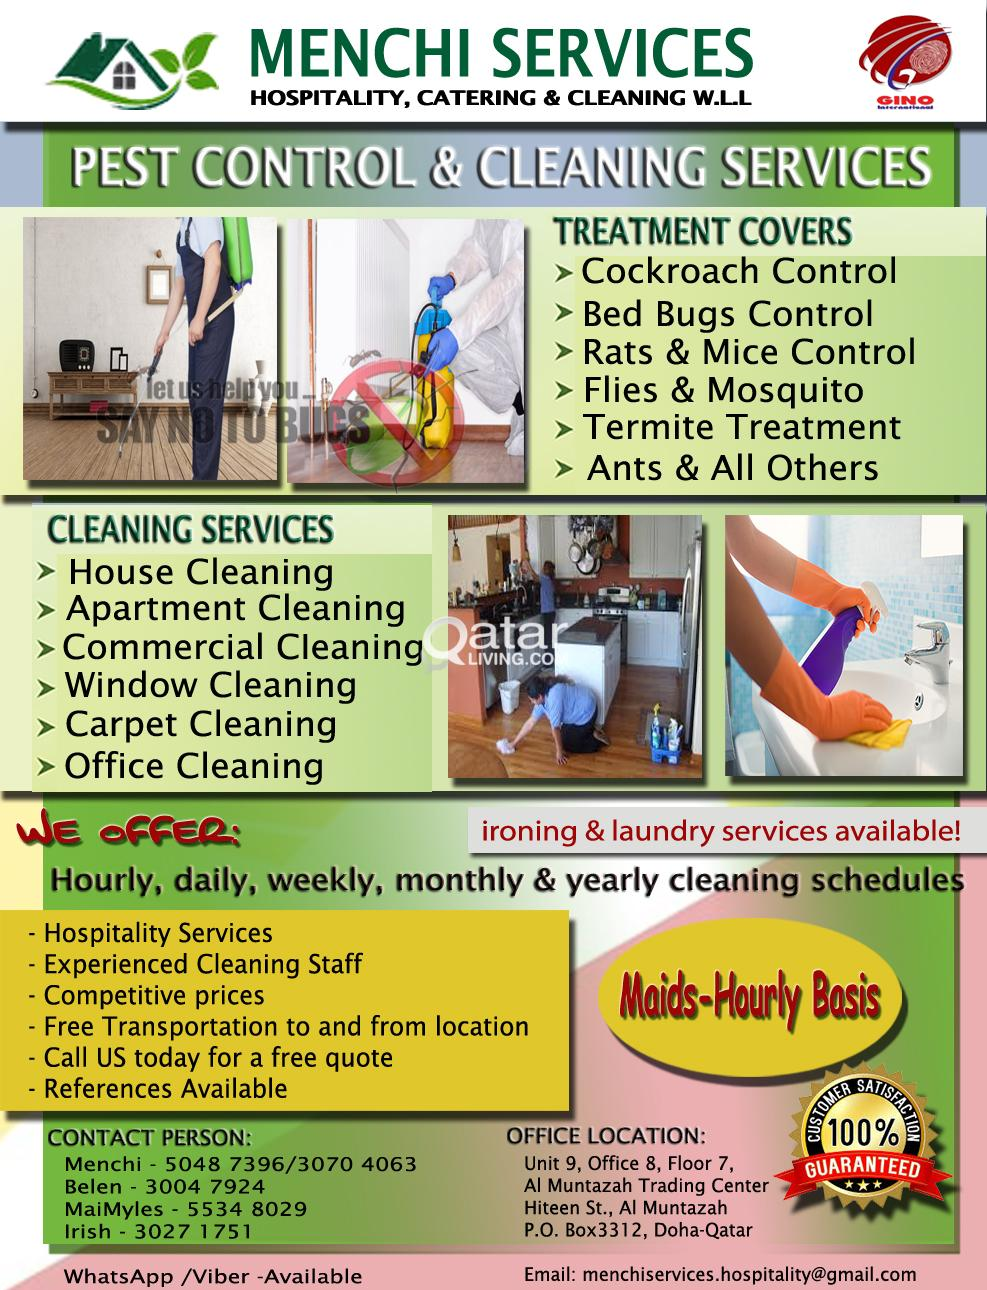 Gentil Beautiful Apartment Cleaning Services Prices Photos Interior